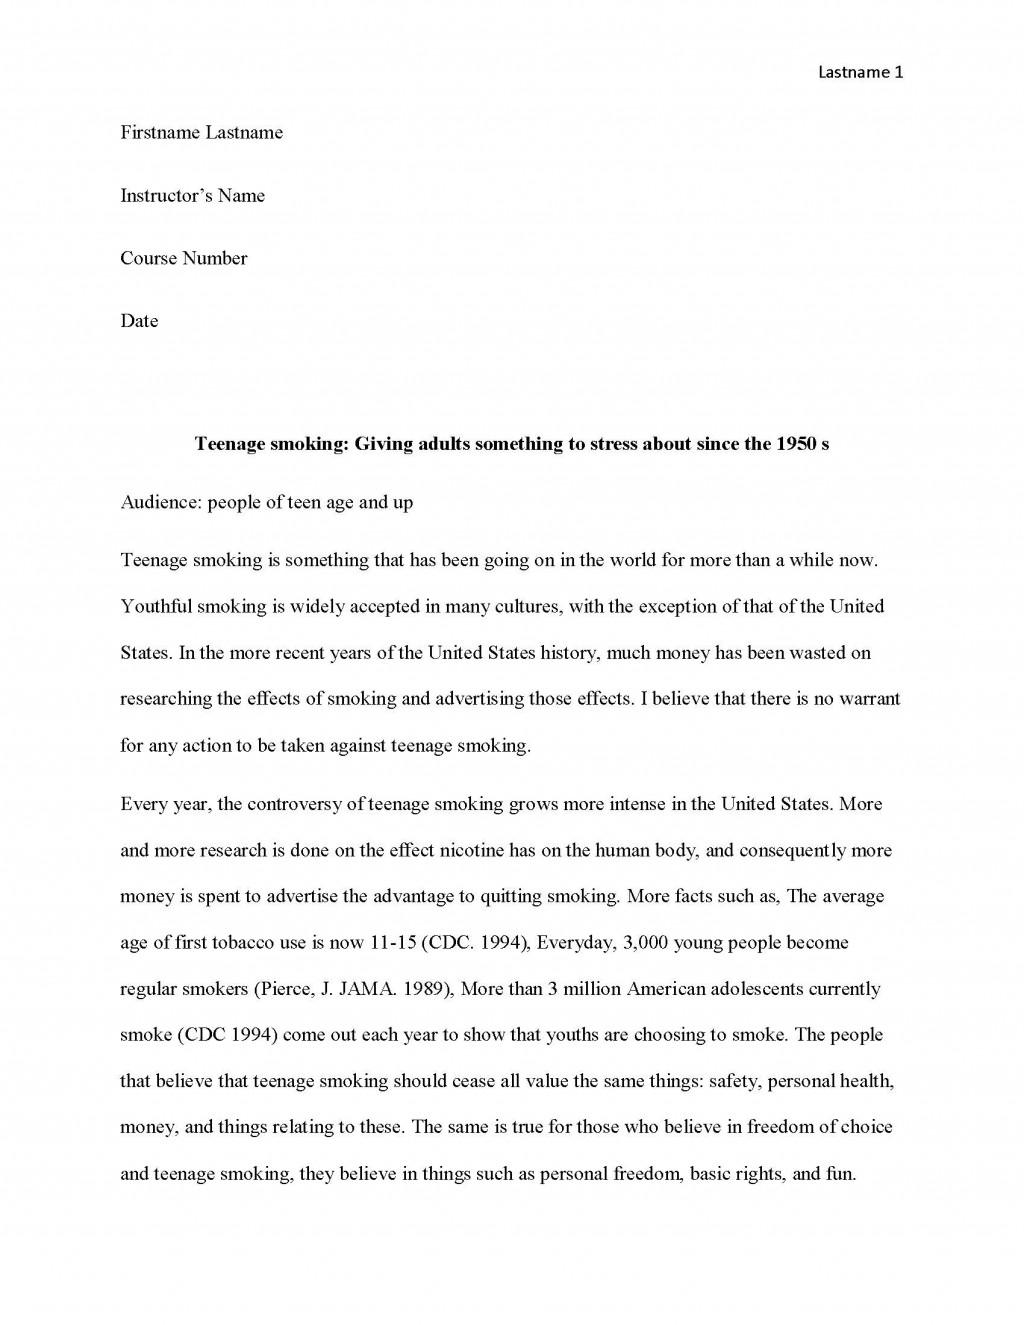 012 Writing Scholarship Essay Teen Smoking Free Sample Page 1 Excellent A Good Keys To Winning Large